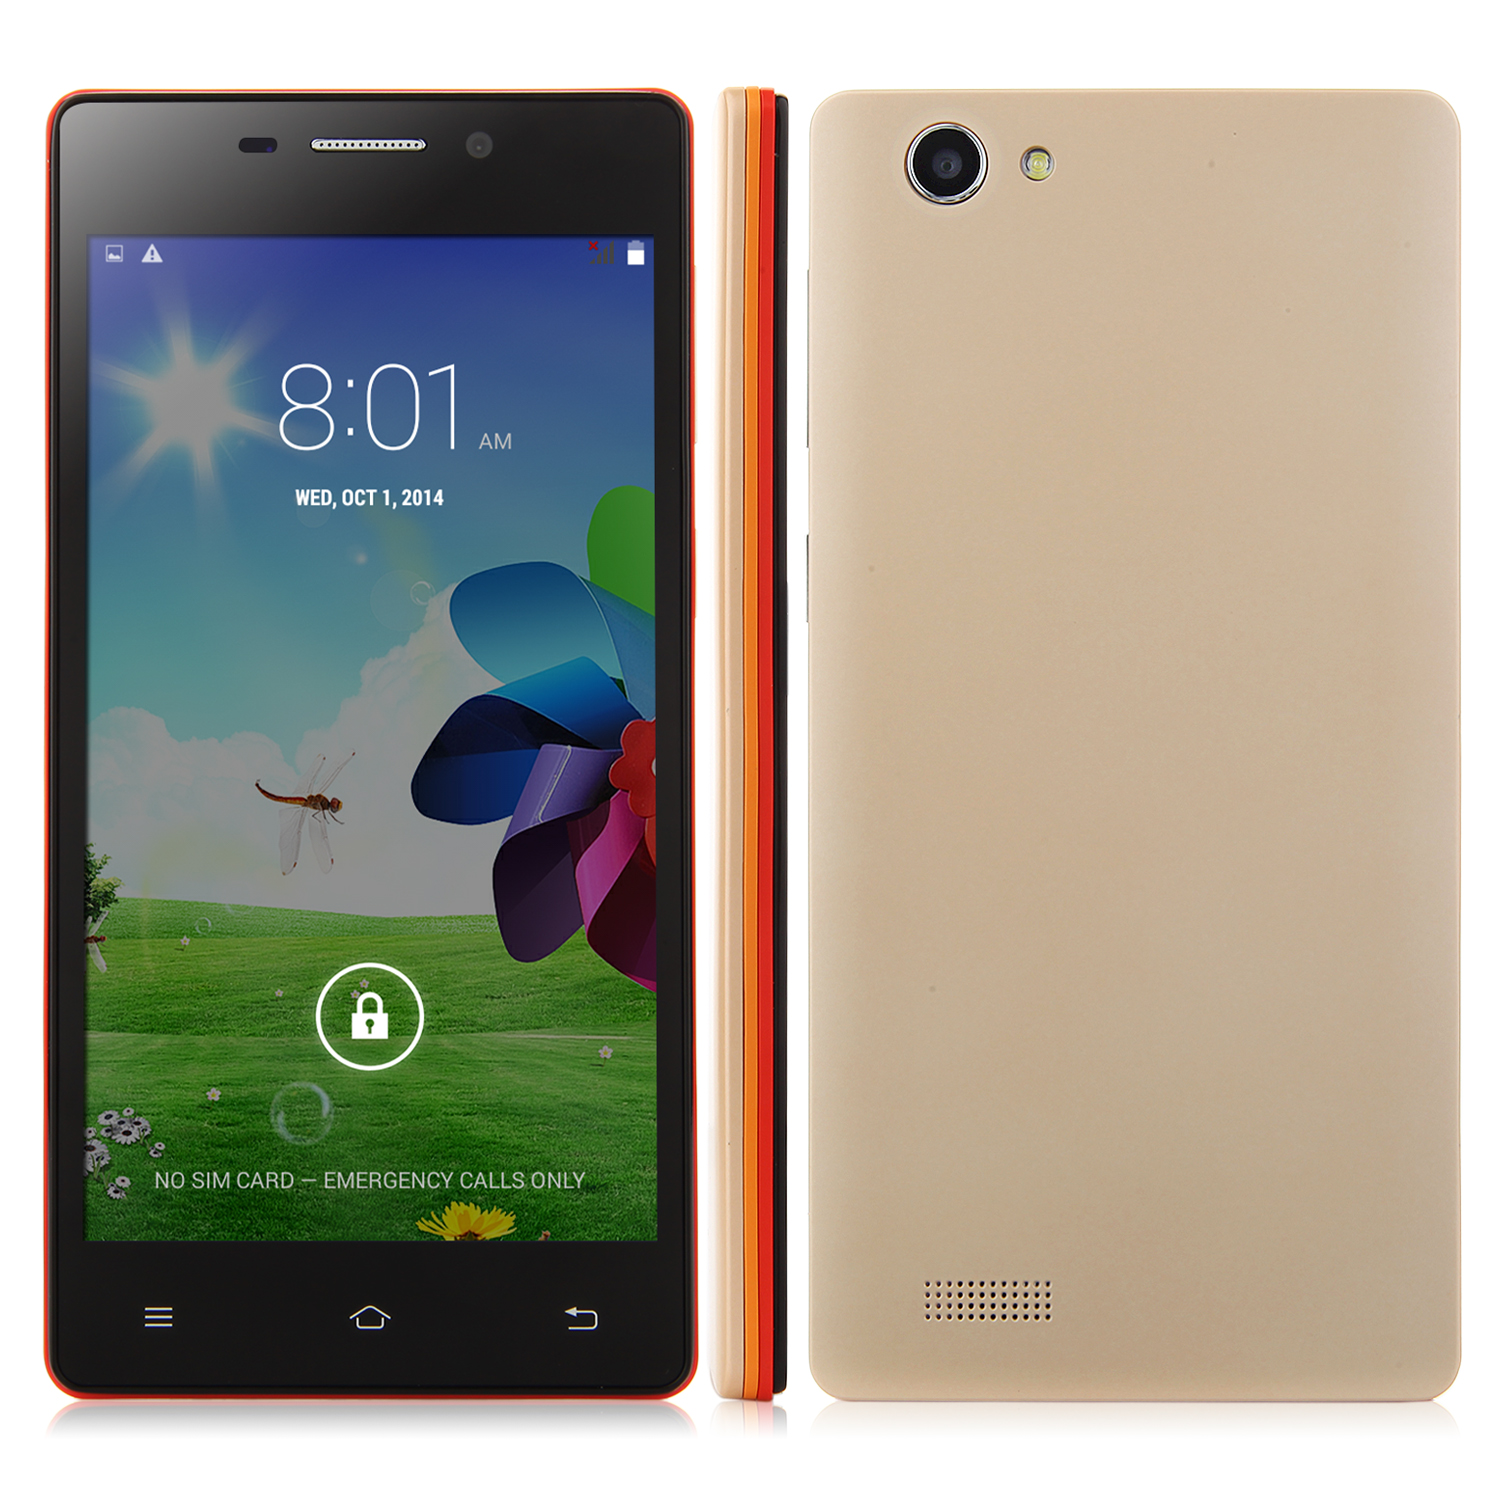 X2 Smartphone Android 4.4 MTK6572W 5.0 Inch QHD Screen Smart Wake Gold